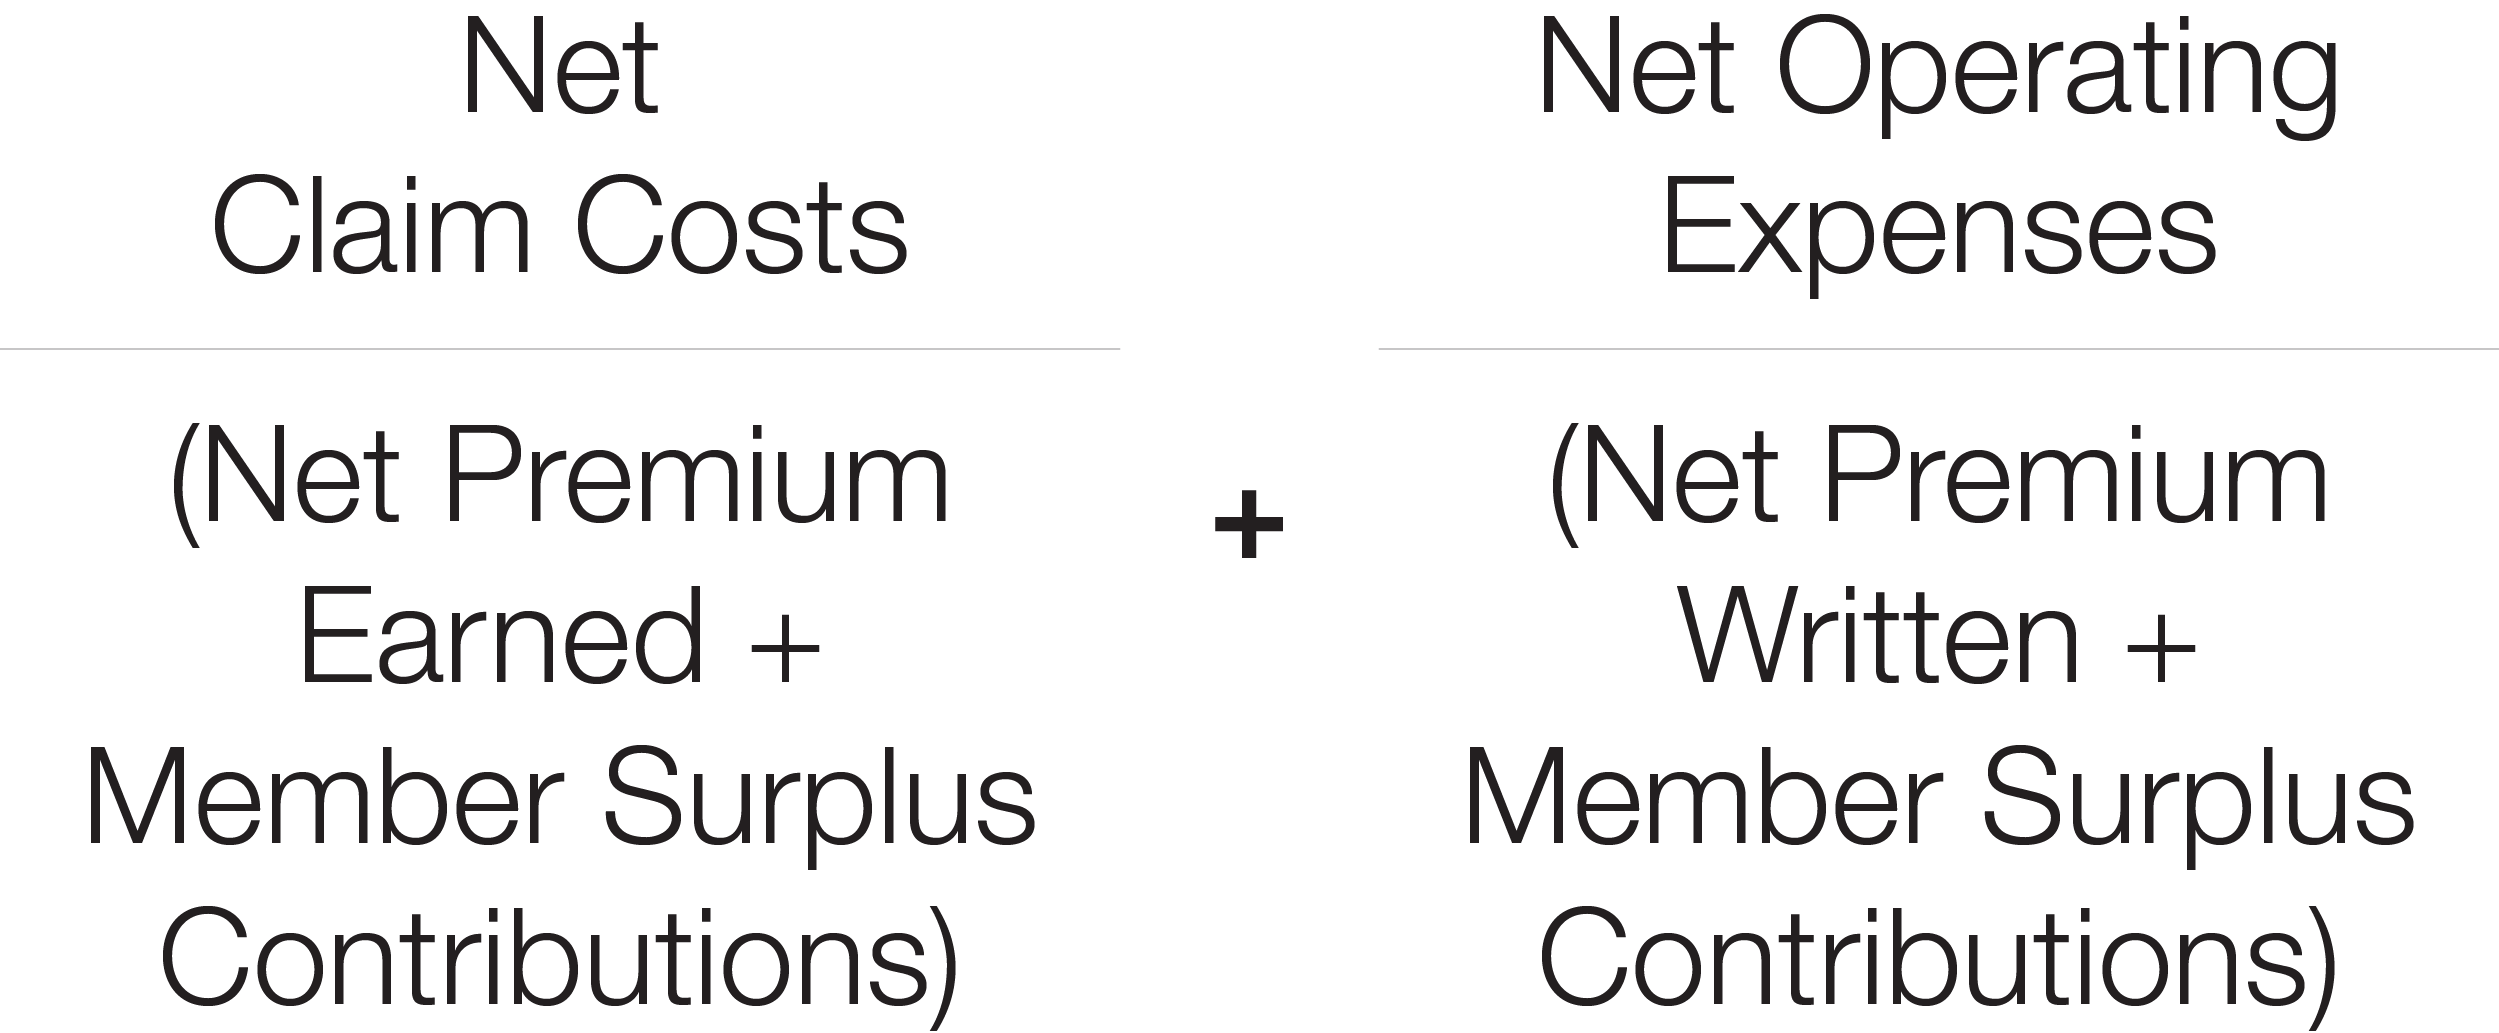 Claims and Expenses - Combined Ratios - Adjusted Combined Ratio Equation.png